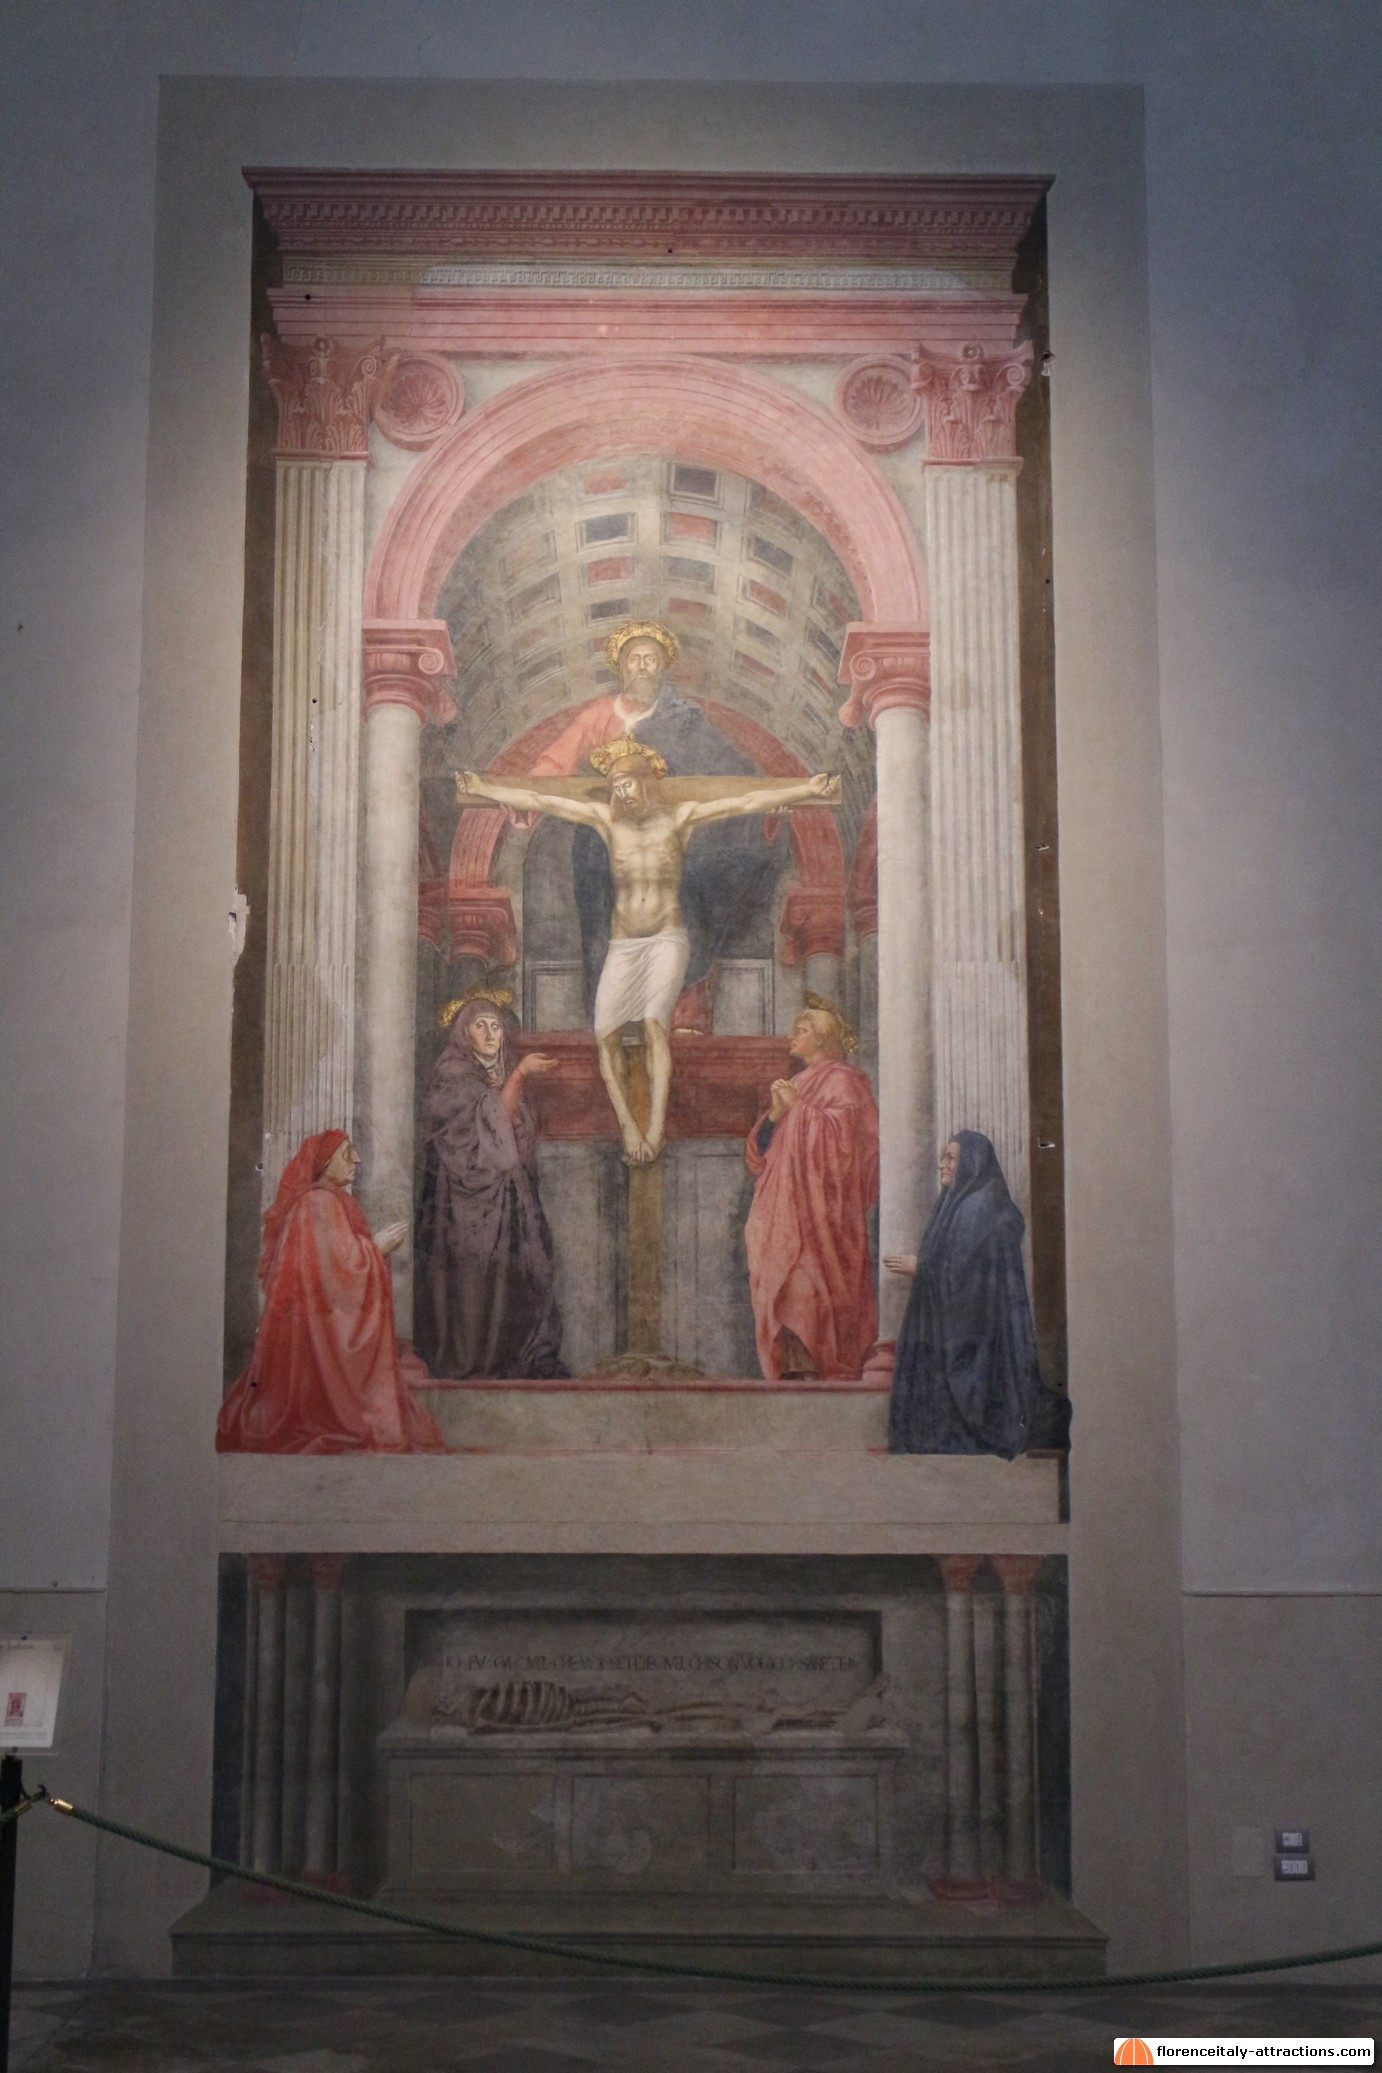 Masaccio – Life and Works